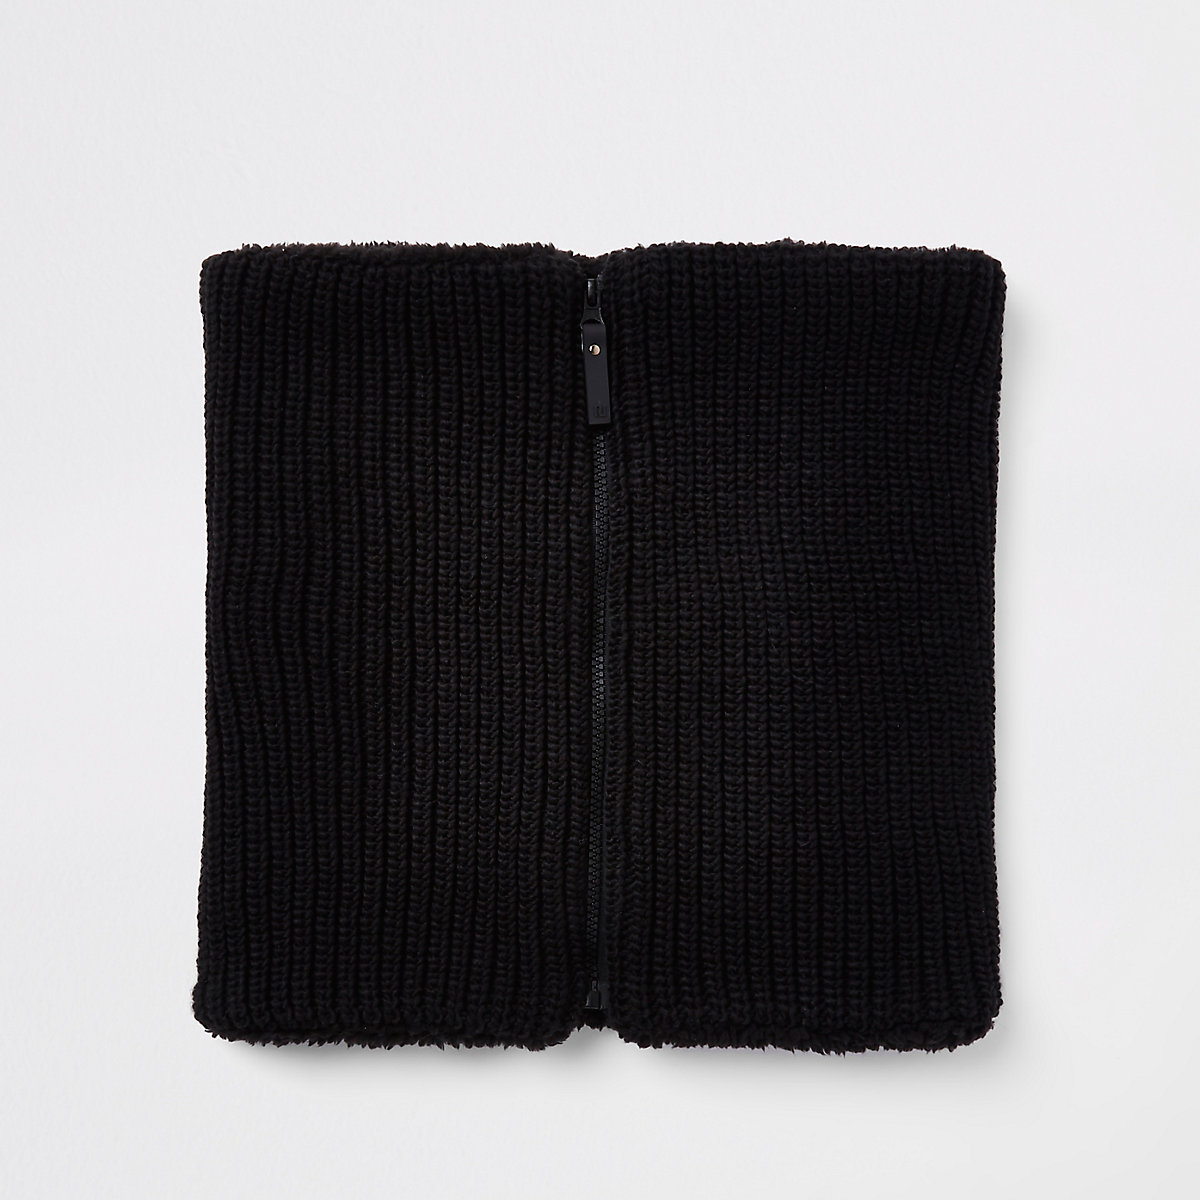 Black knit snood